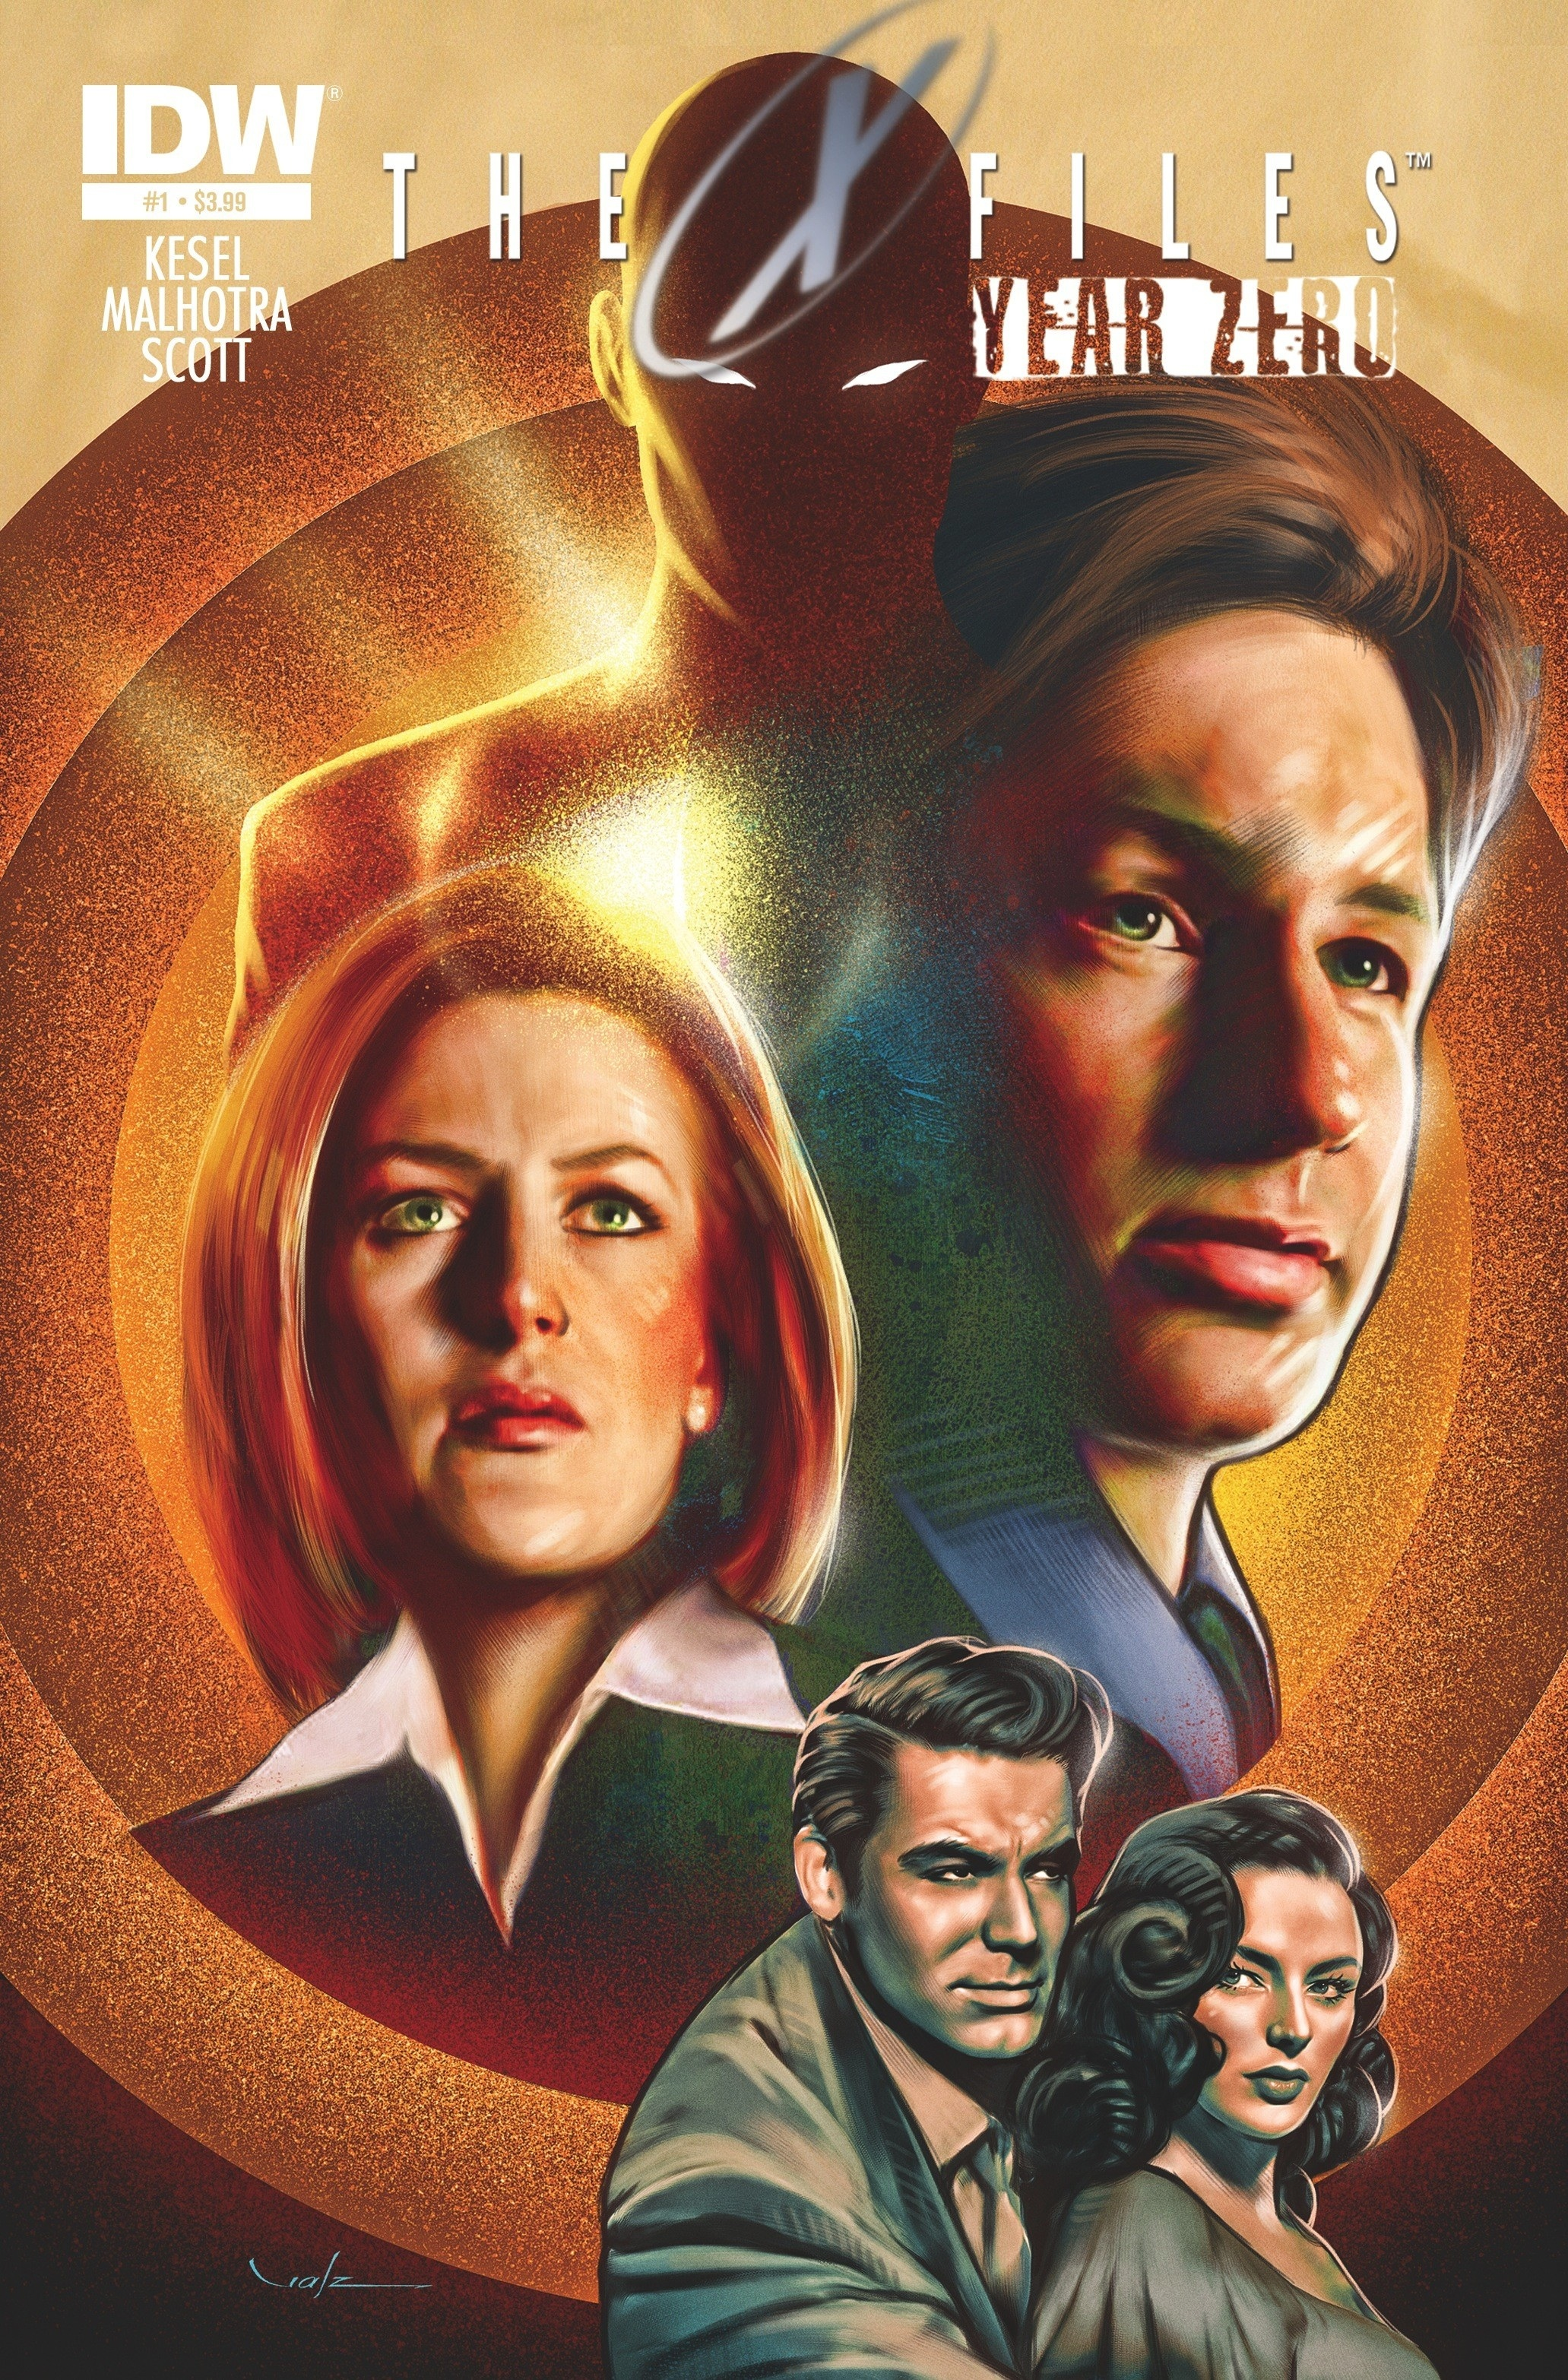 The Case That Started It All: X-Files: Year Zero from IDW!